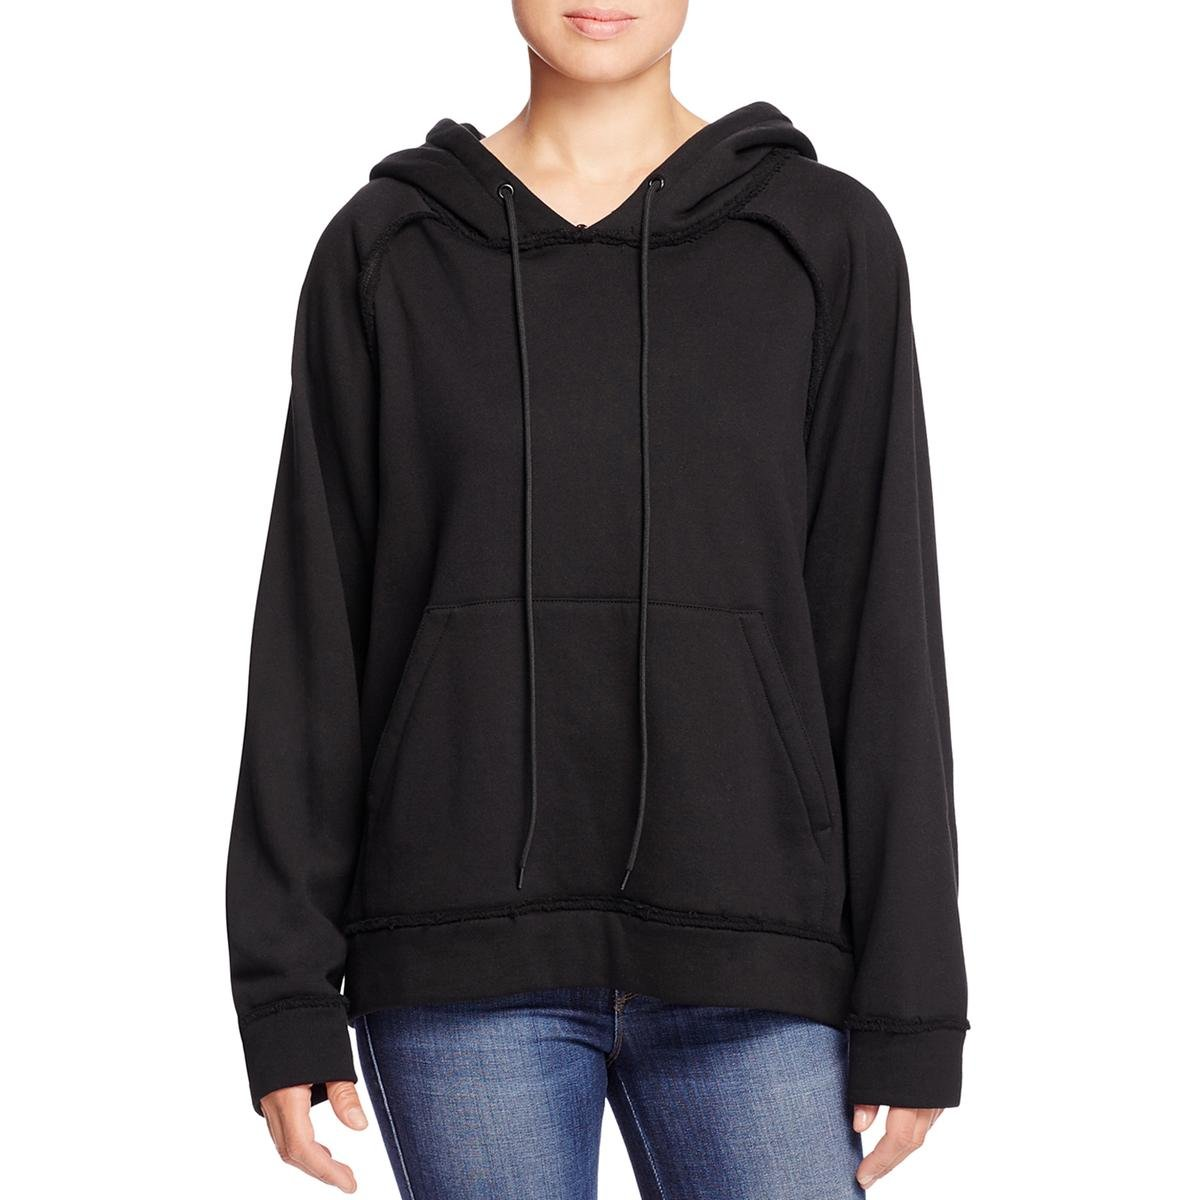 DKNY Womens Cut Out Graphic Hooded Sweatshirt Black S by DKNY